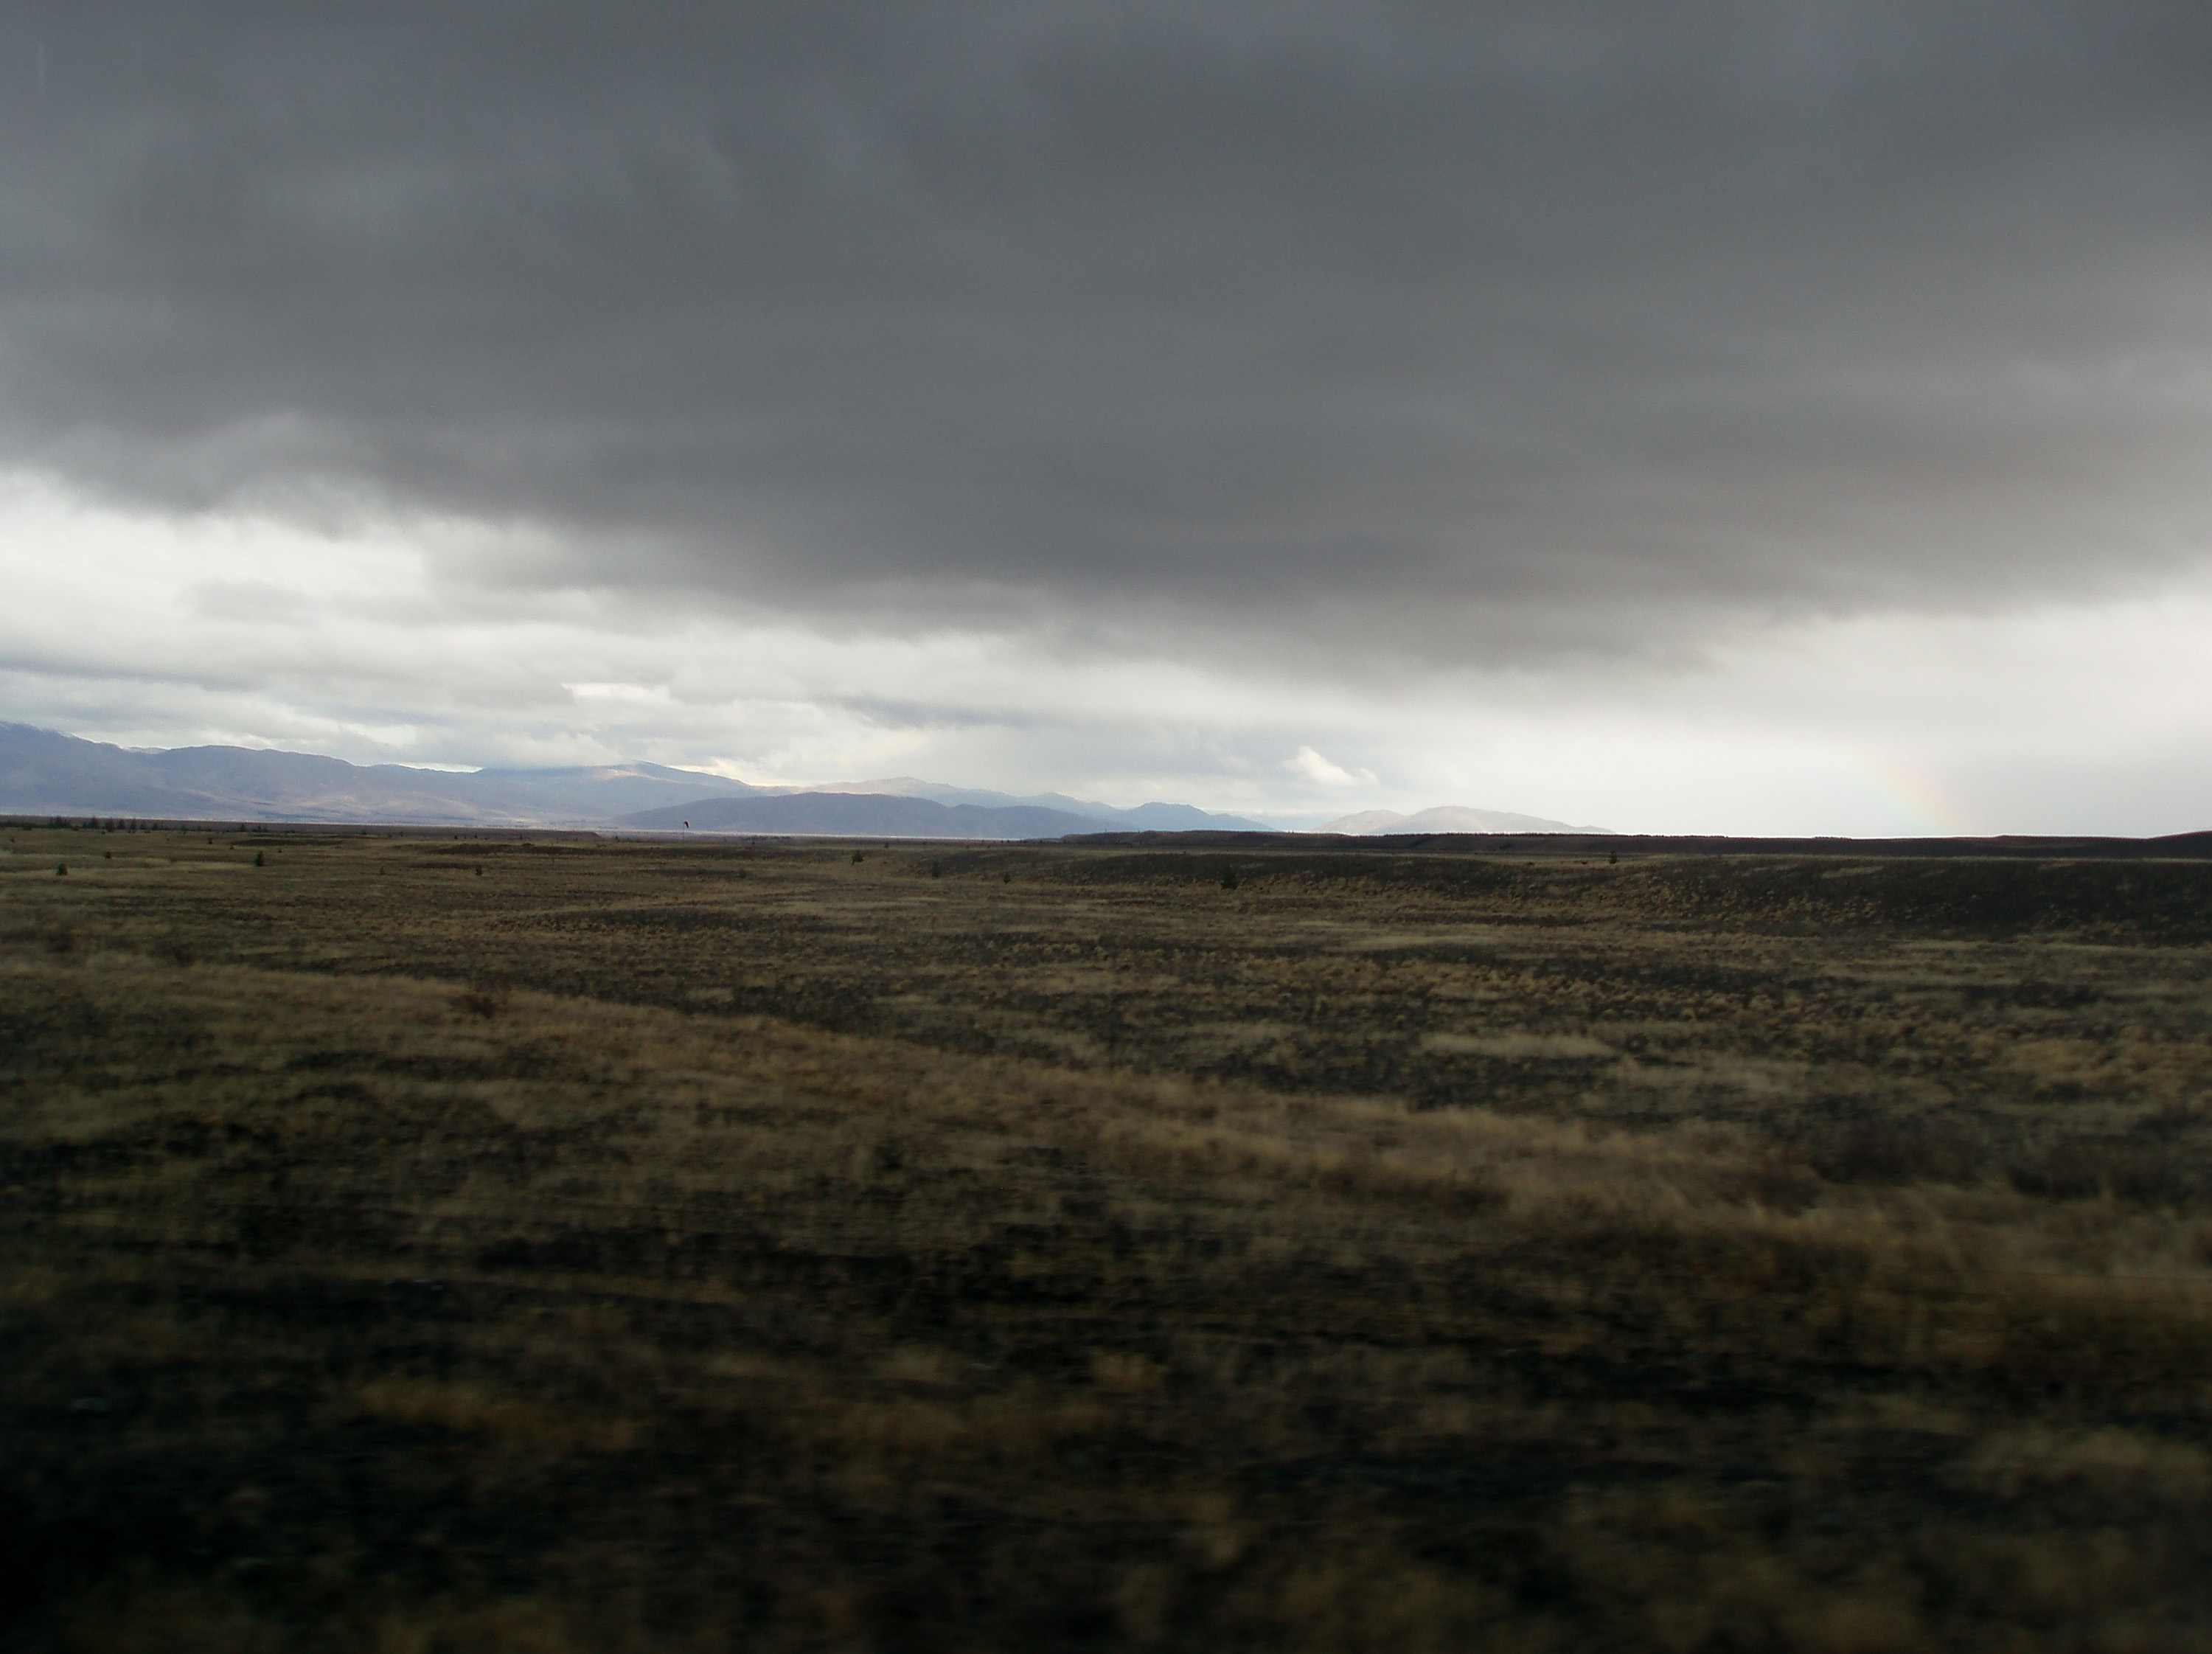 a dark foreboding landscape with low stormy clouds